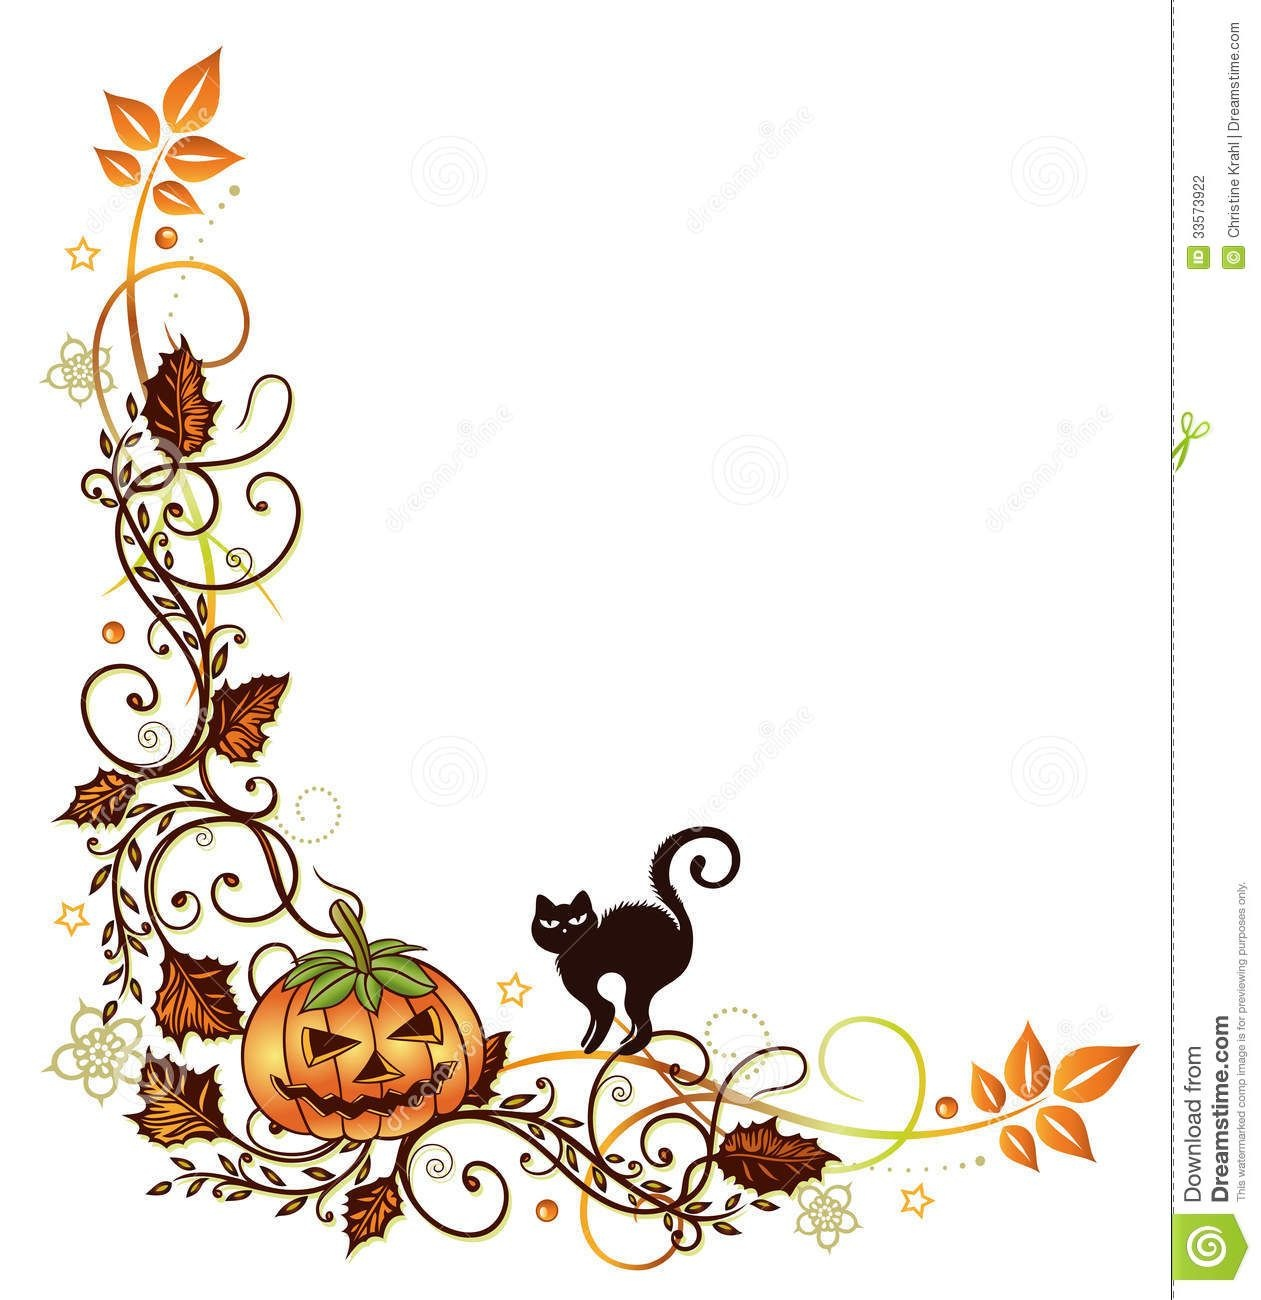 Halloween Border Clipart - Free Large Images | Halloween In 2019 - Free Printable Halloween Stationery Borders